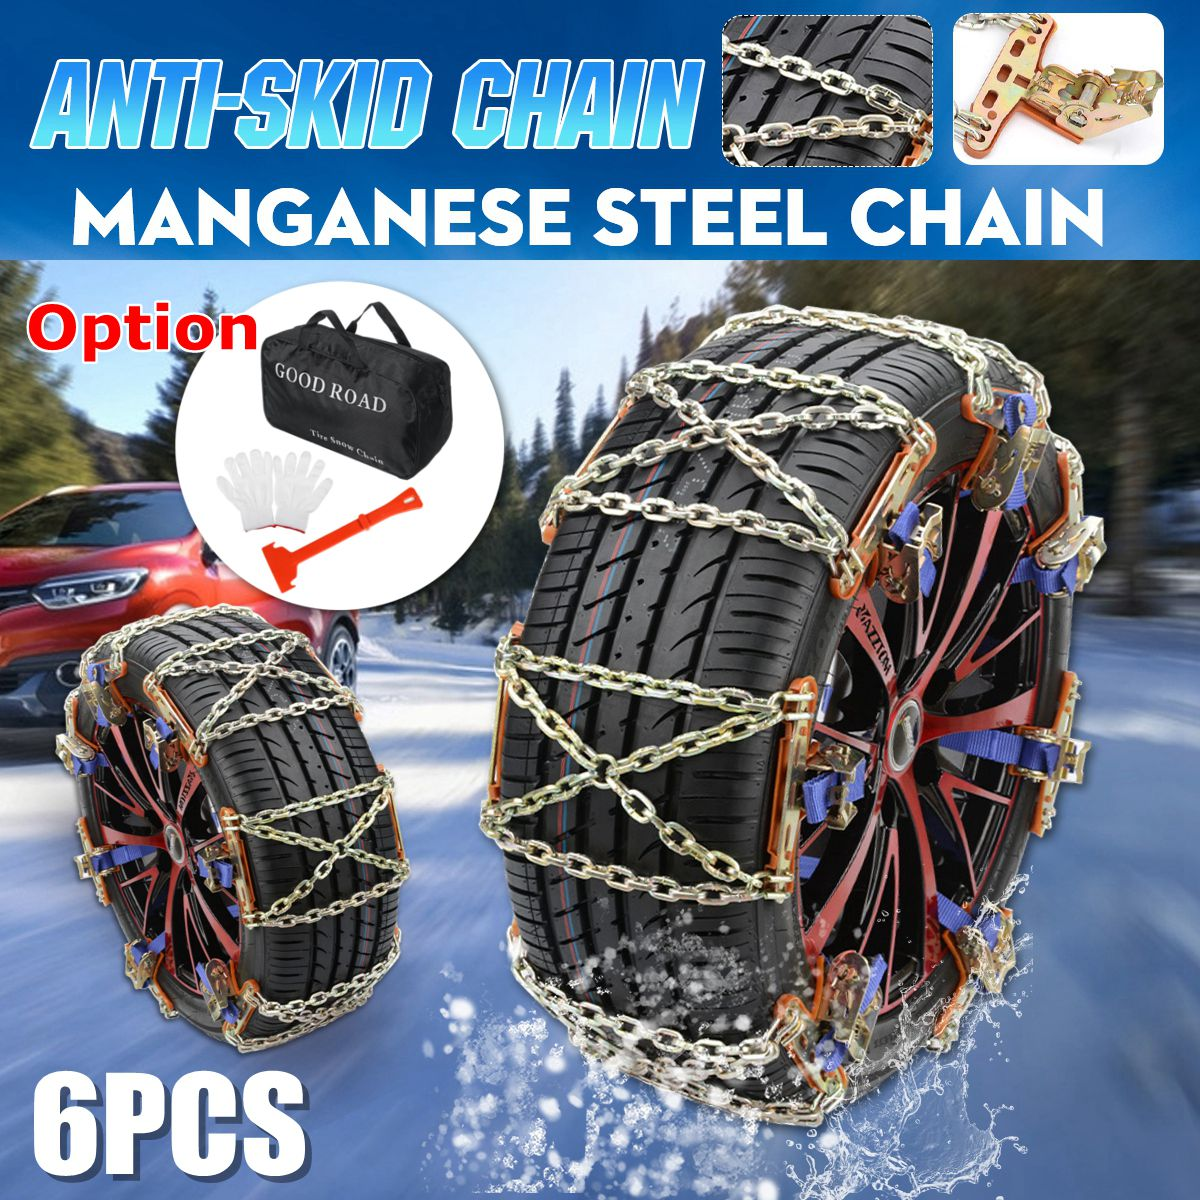 4 6 12 pcs/set Universal Steel Truck Car Wheels Tyre Tire Snow Ice Chains Belt Anti-skid Wheel Chain Road Safe for + storag bag image